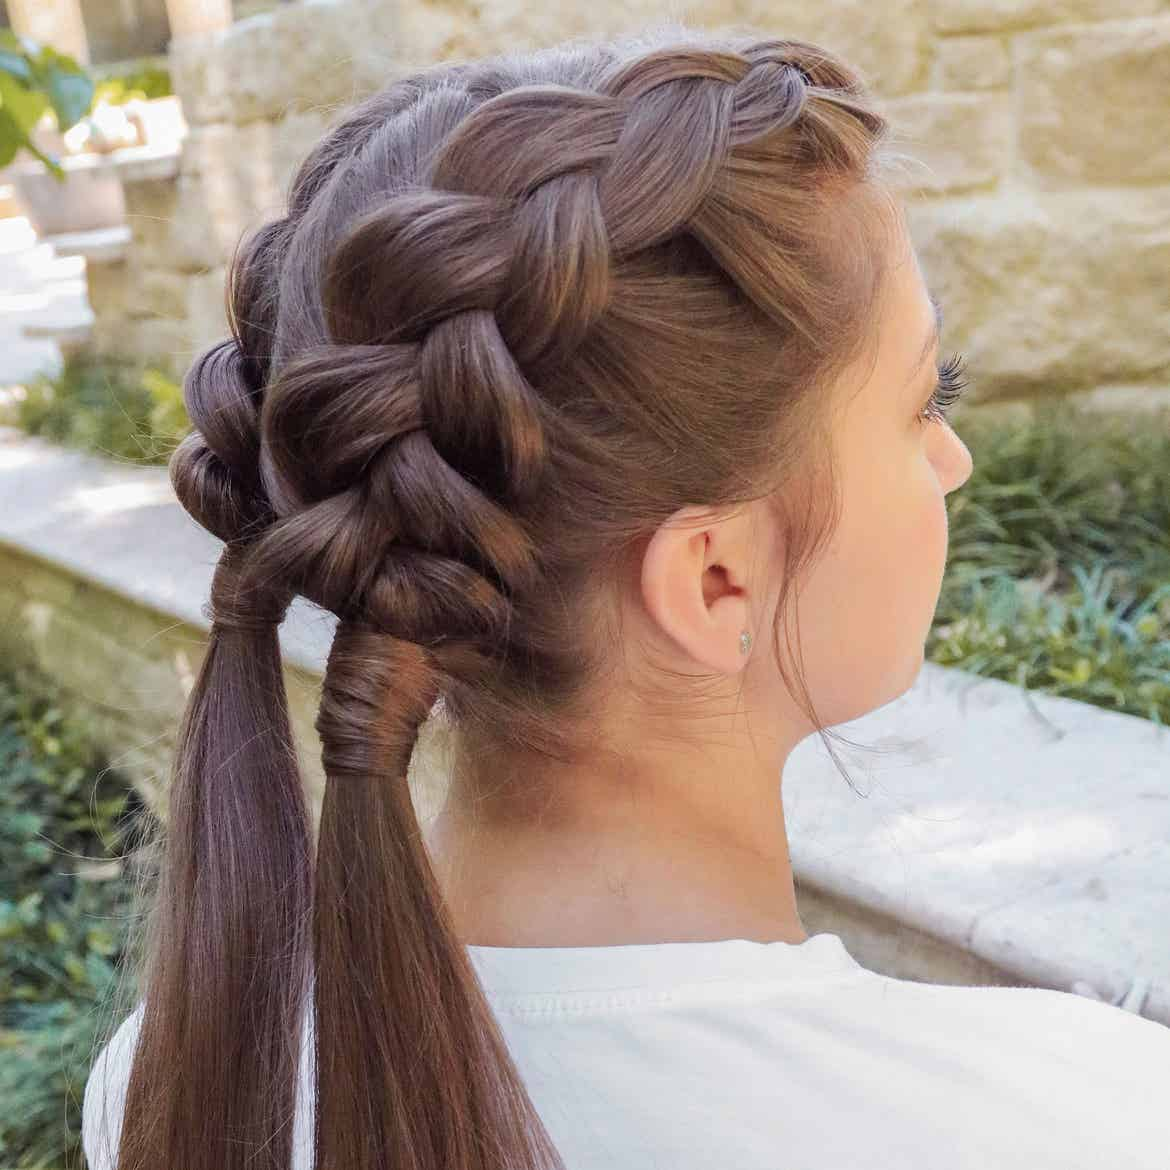 Mindy's daughter, Kamri, sporting the dutch-braid hairstyle from the back.